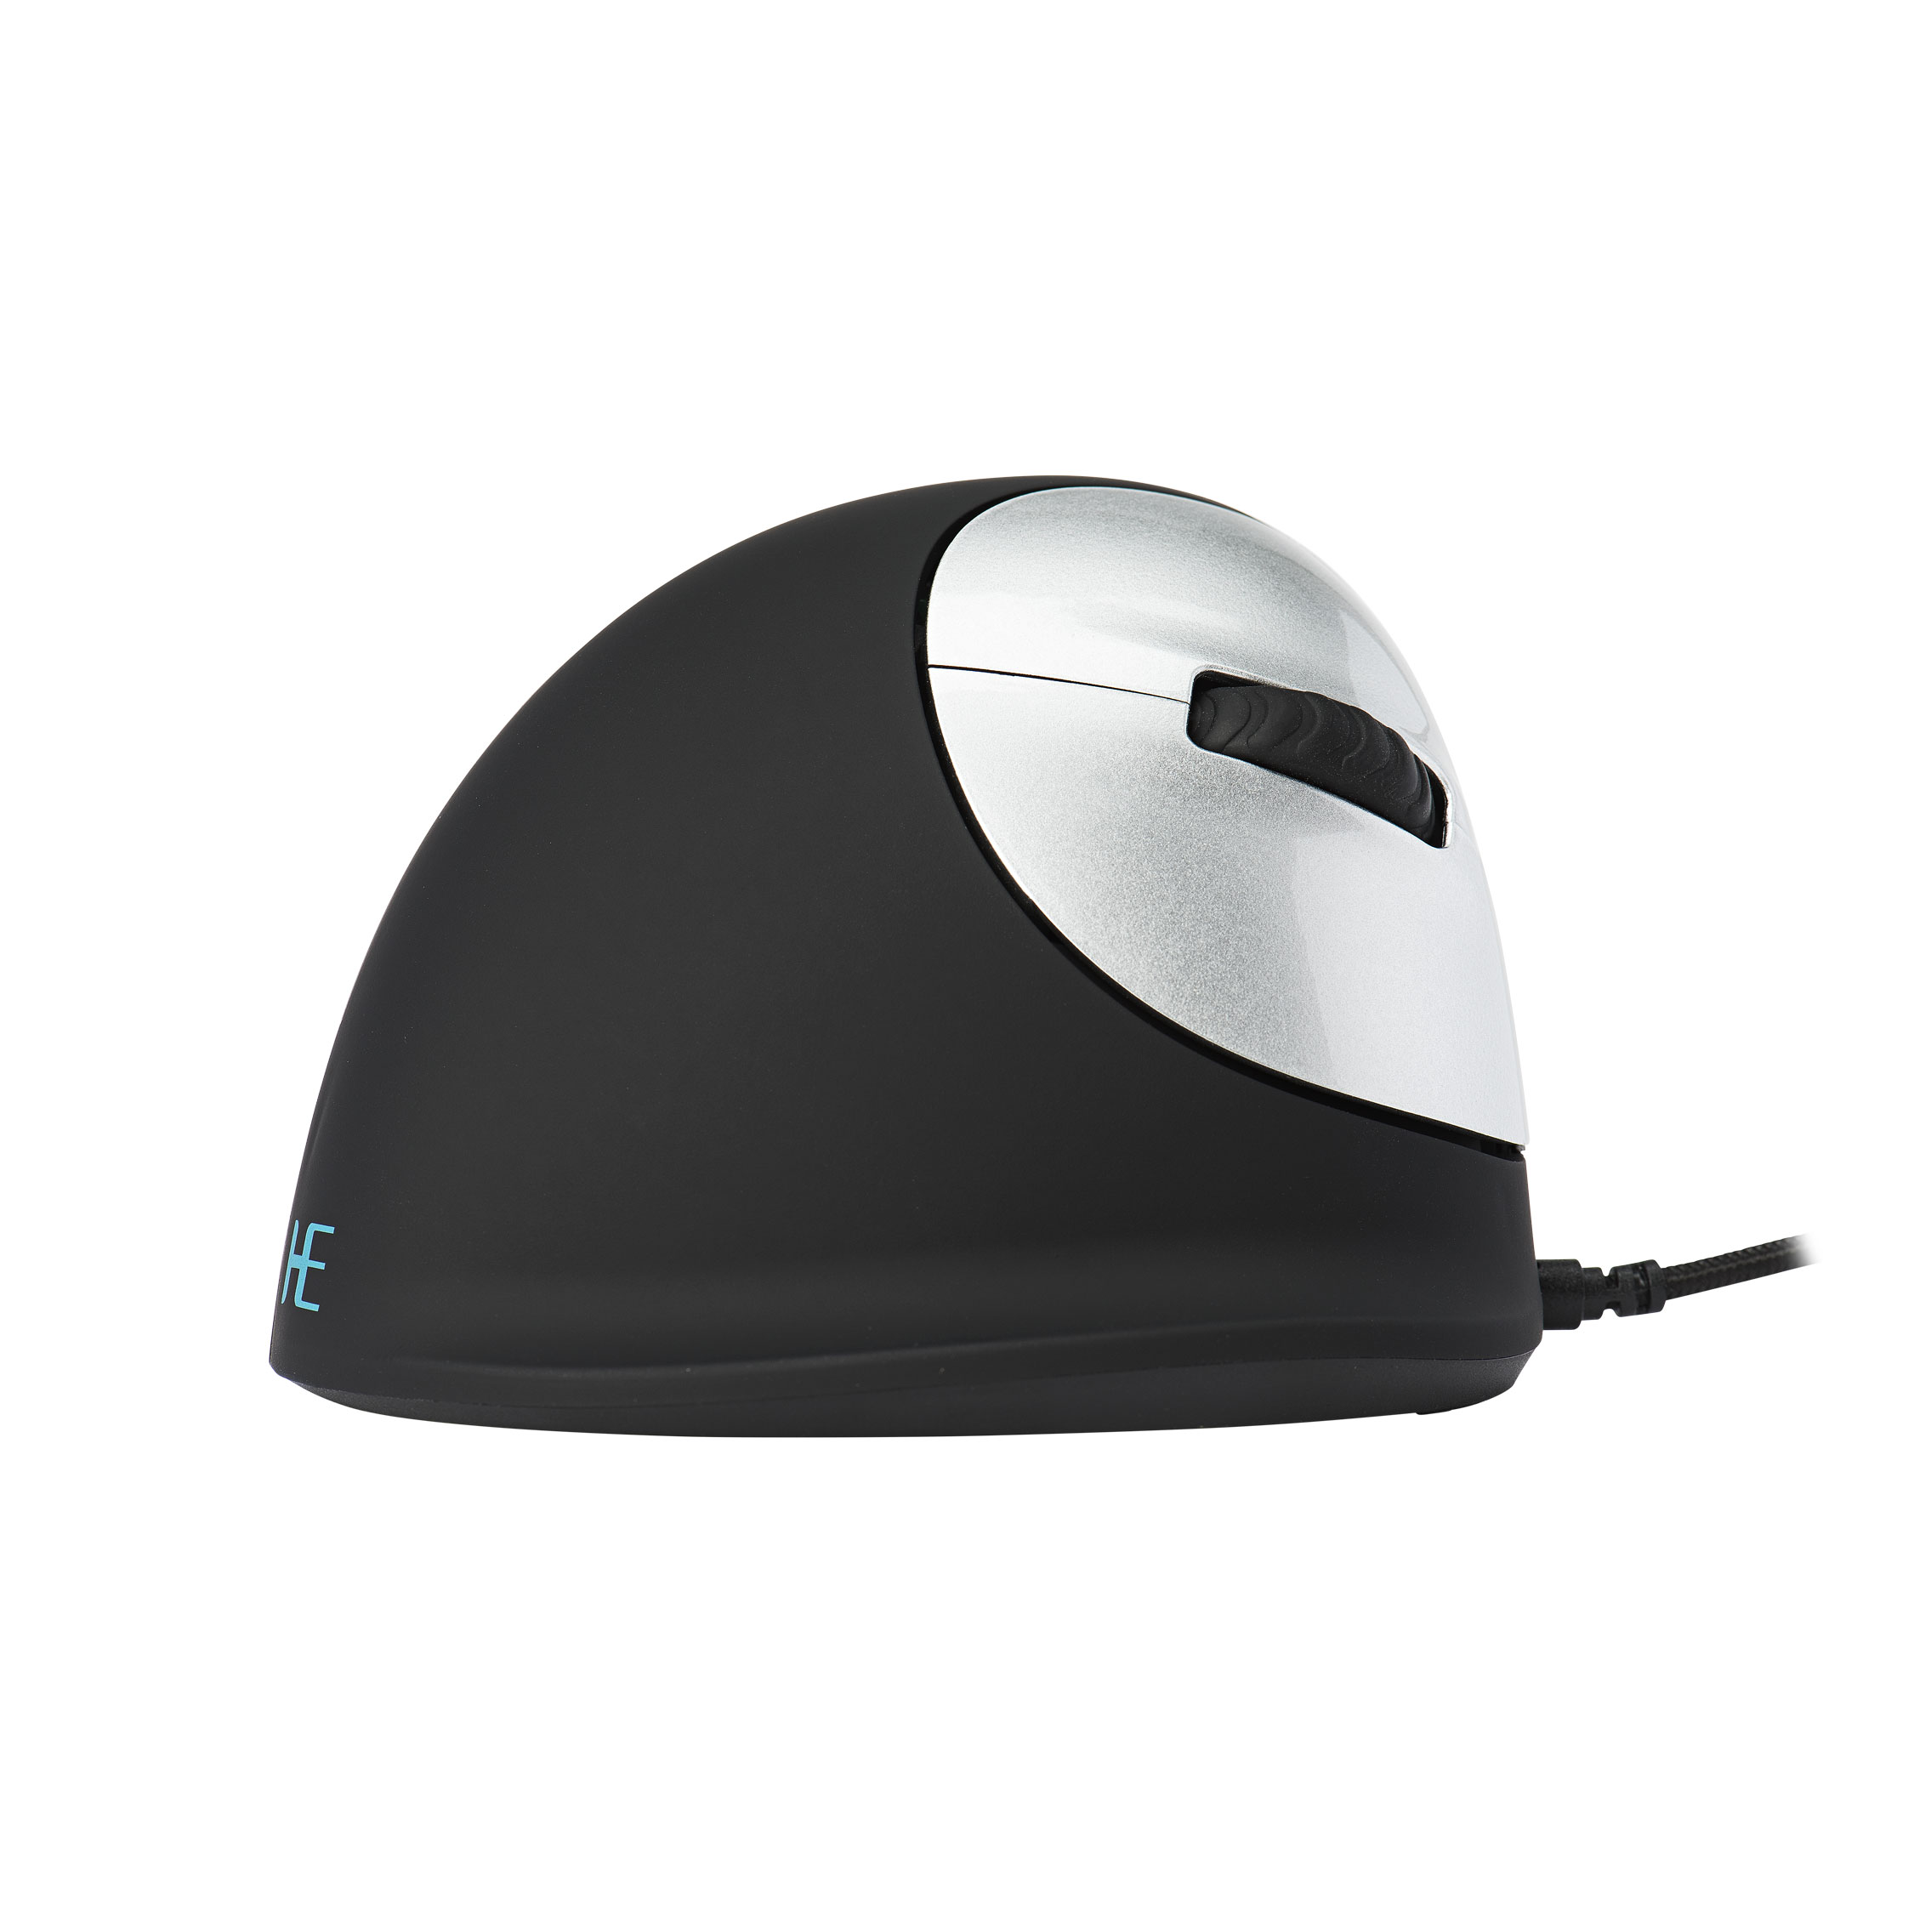 R-Go HE Mouse, Ergonomic mouse, Medium (Hand Size 165-185mm), Right Handed, wired - 4